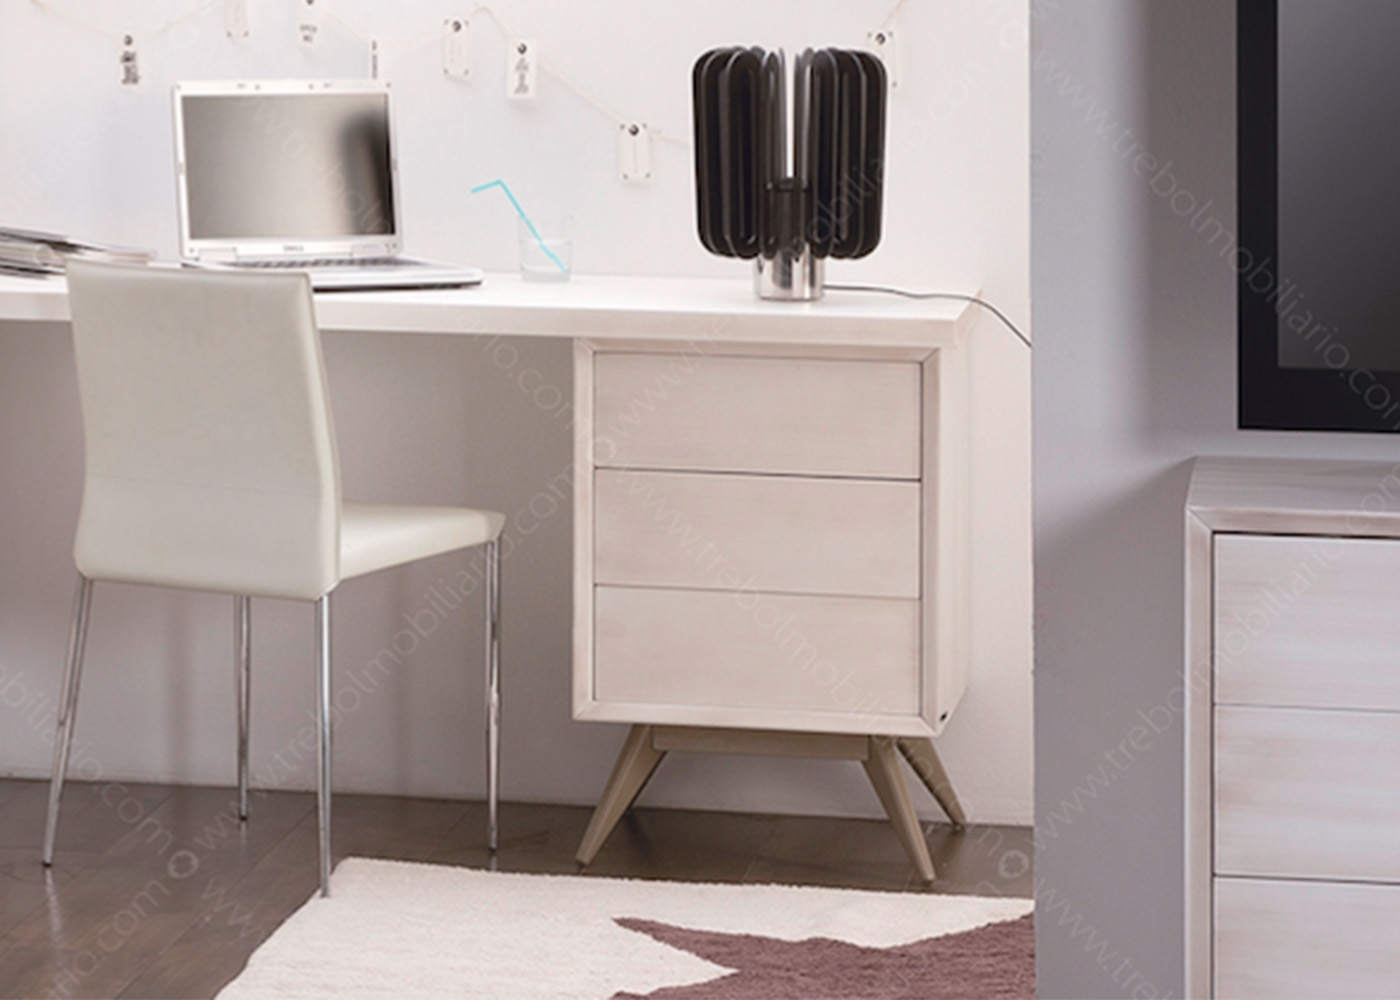 caisson de bureau au design scandinave de qualit chez ksl. Black Bedroom Furniture Sets. Home Design Ideas